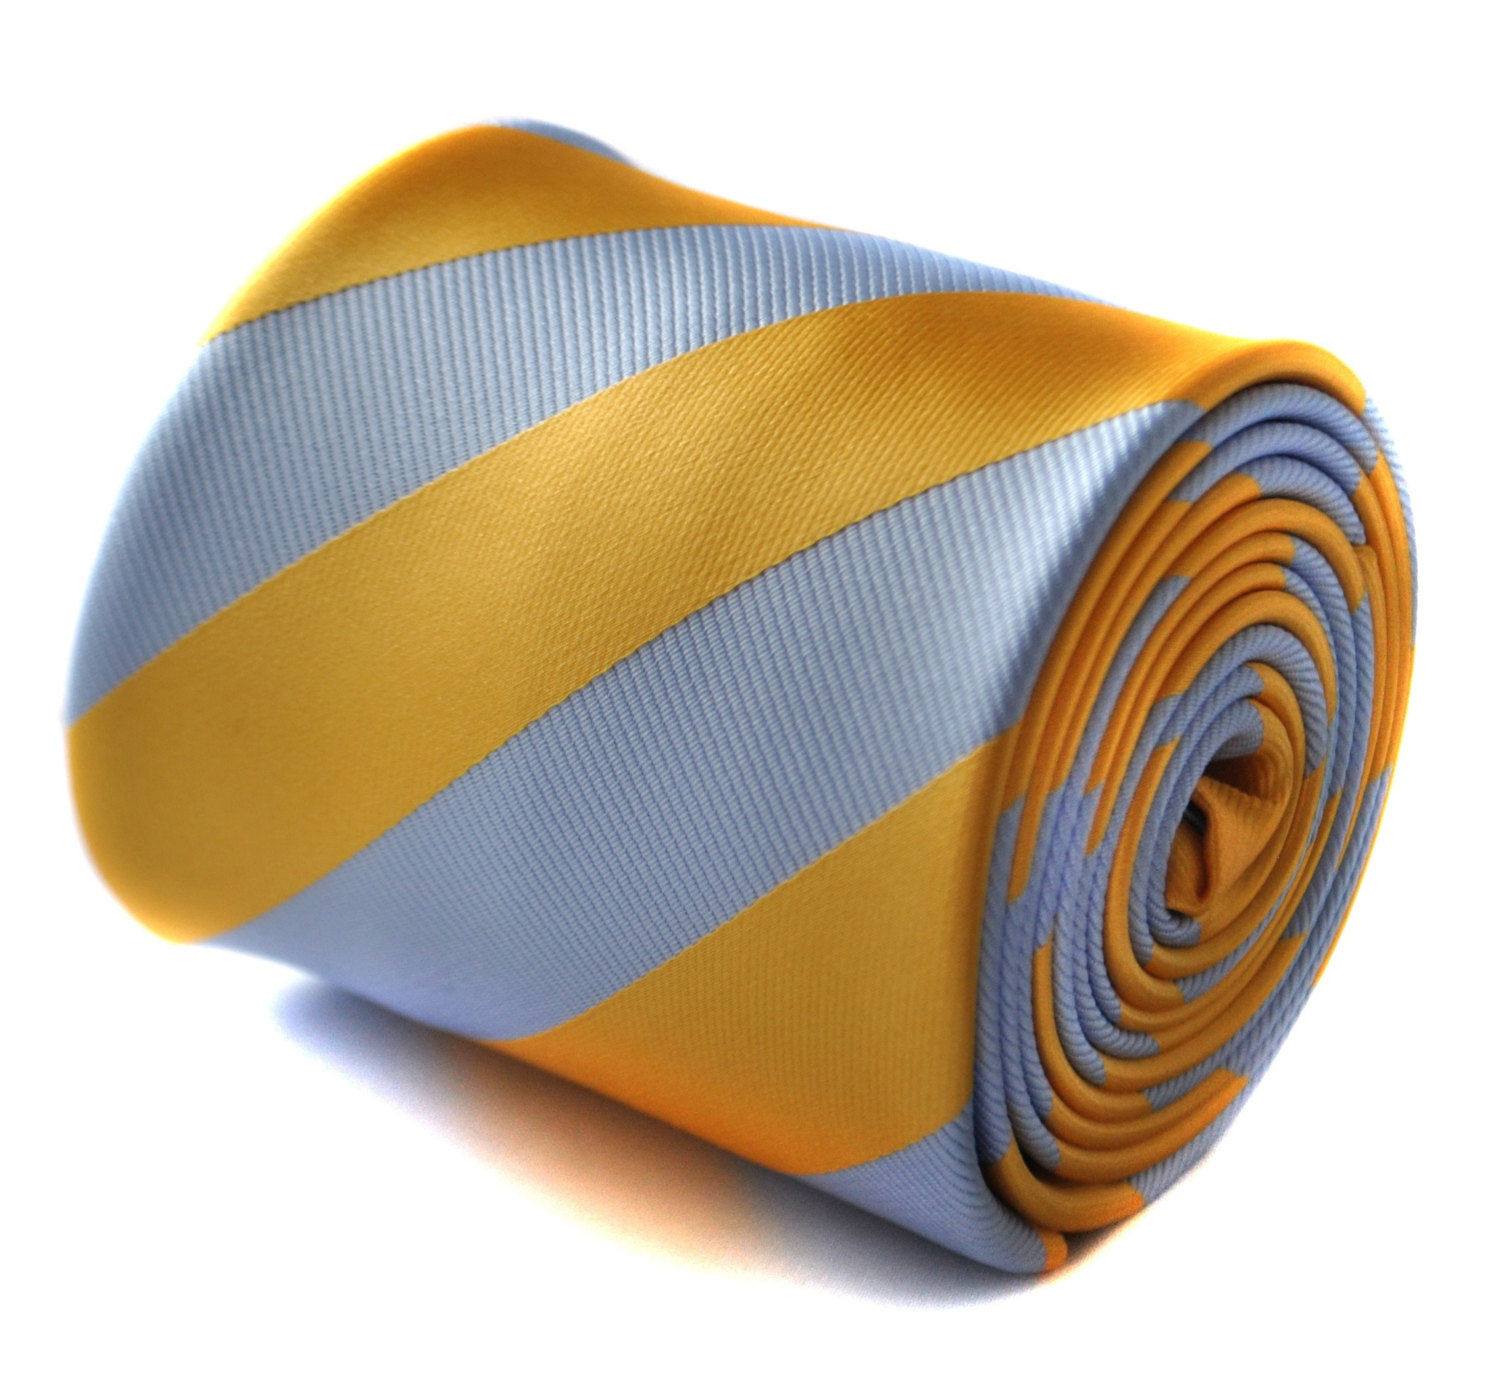 light blue and yellow gold barber striped tie with signature floral design to th